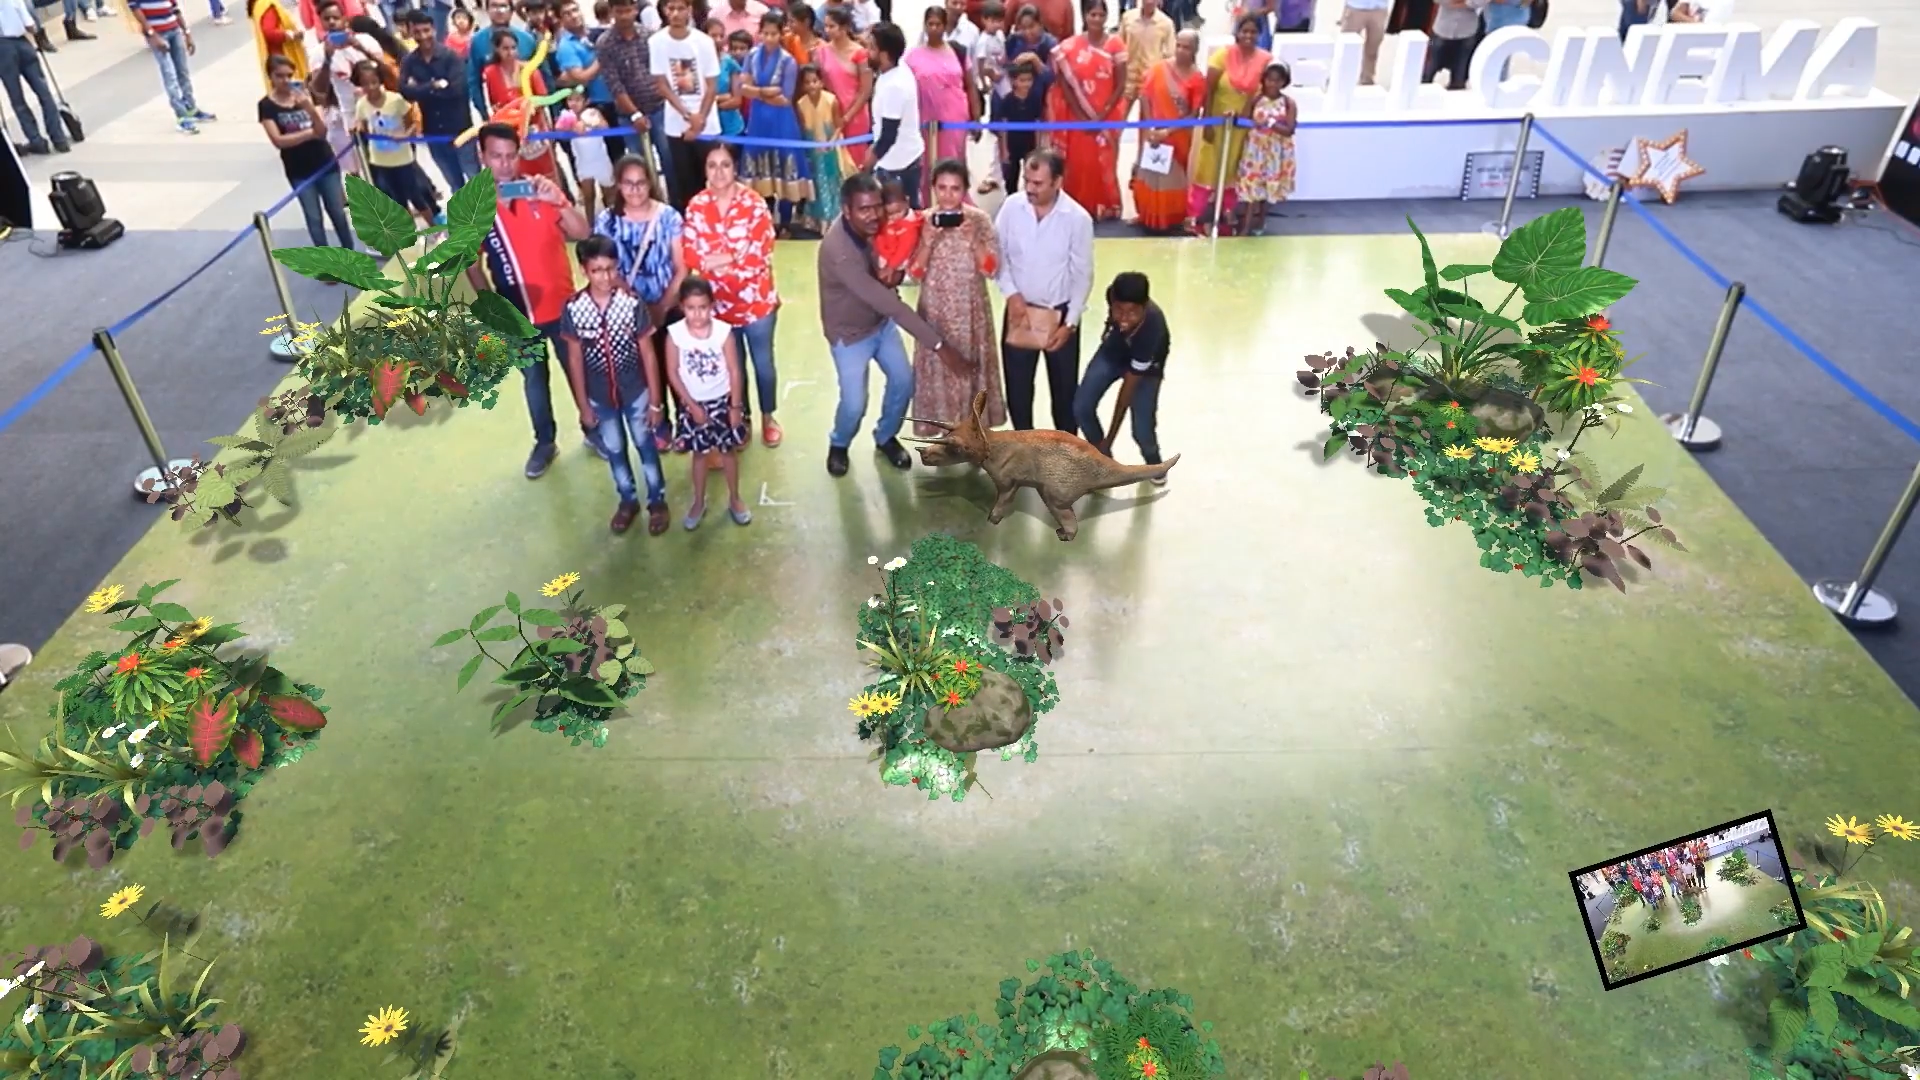 Jurrasic World AR Digital